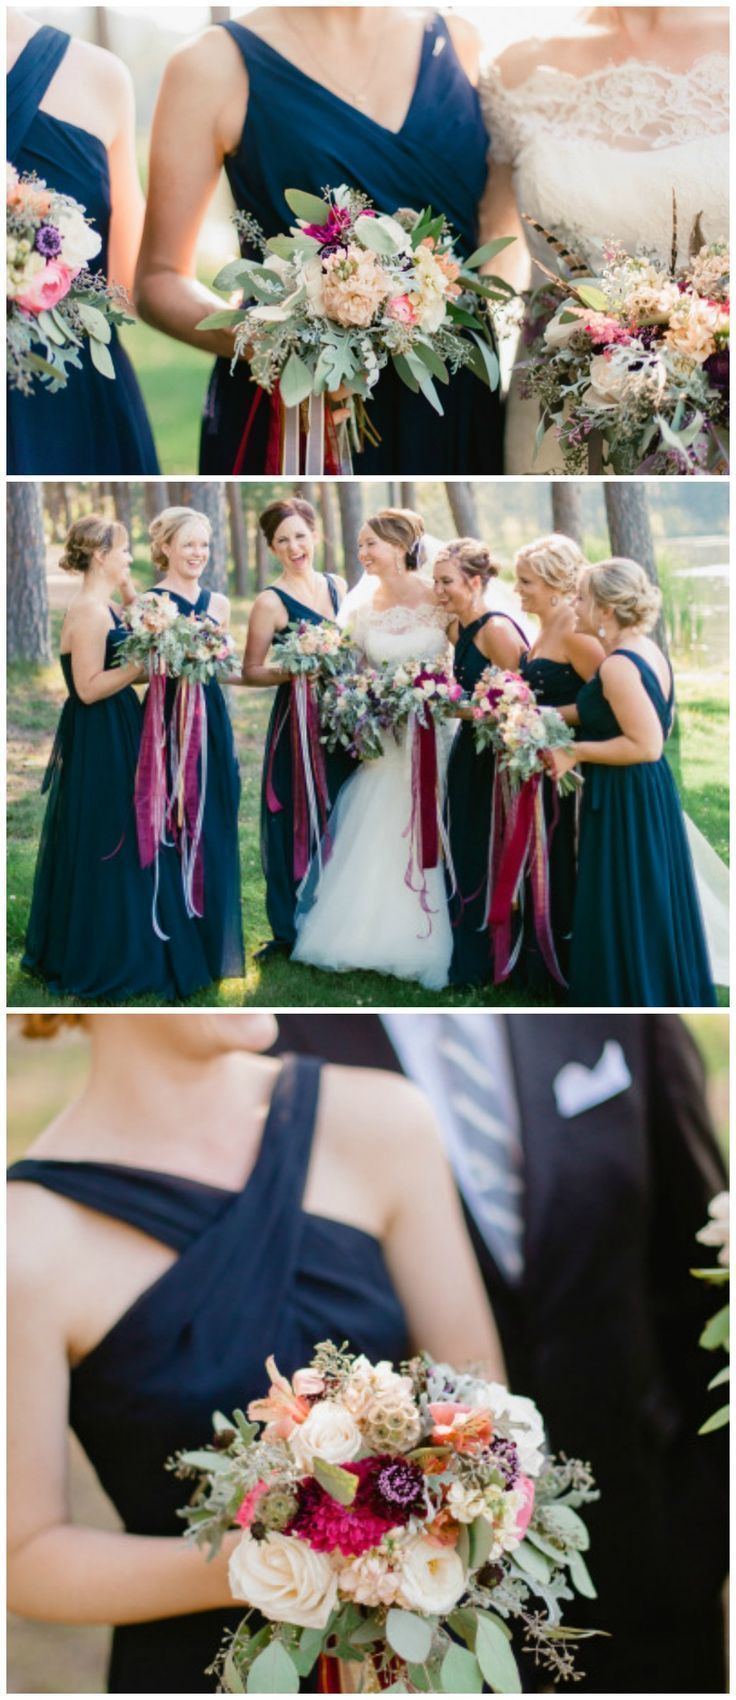 Mix and match bridesmaid dresses in navy. | Kennedy Blue Bridesmaids | Jeff Sampson Photography